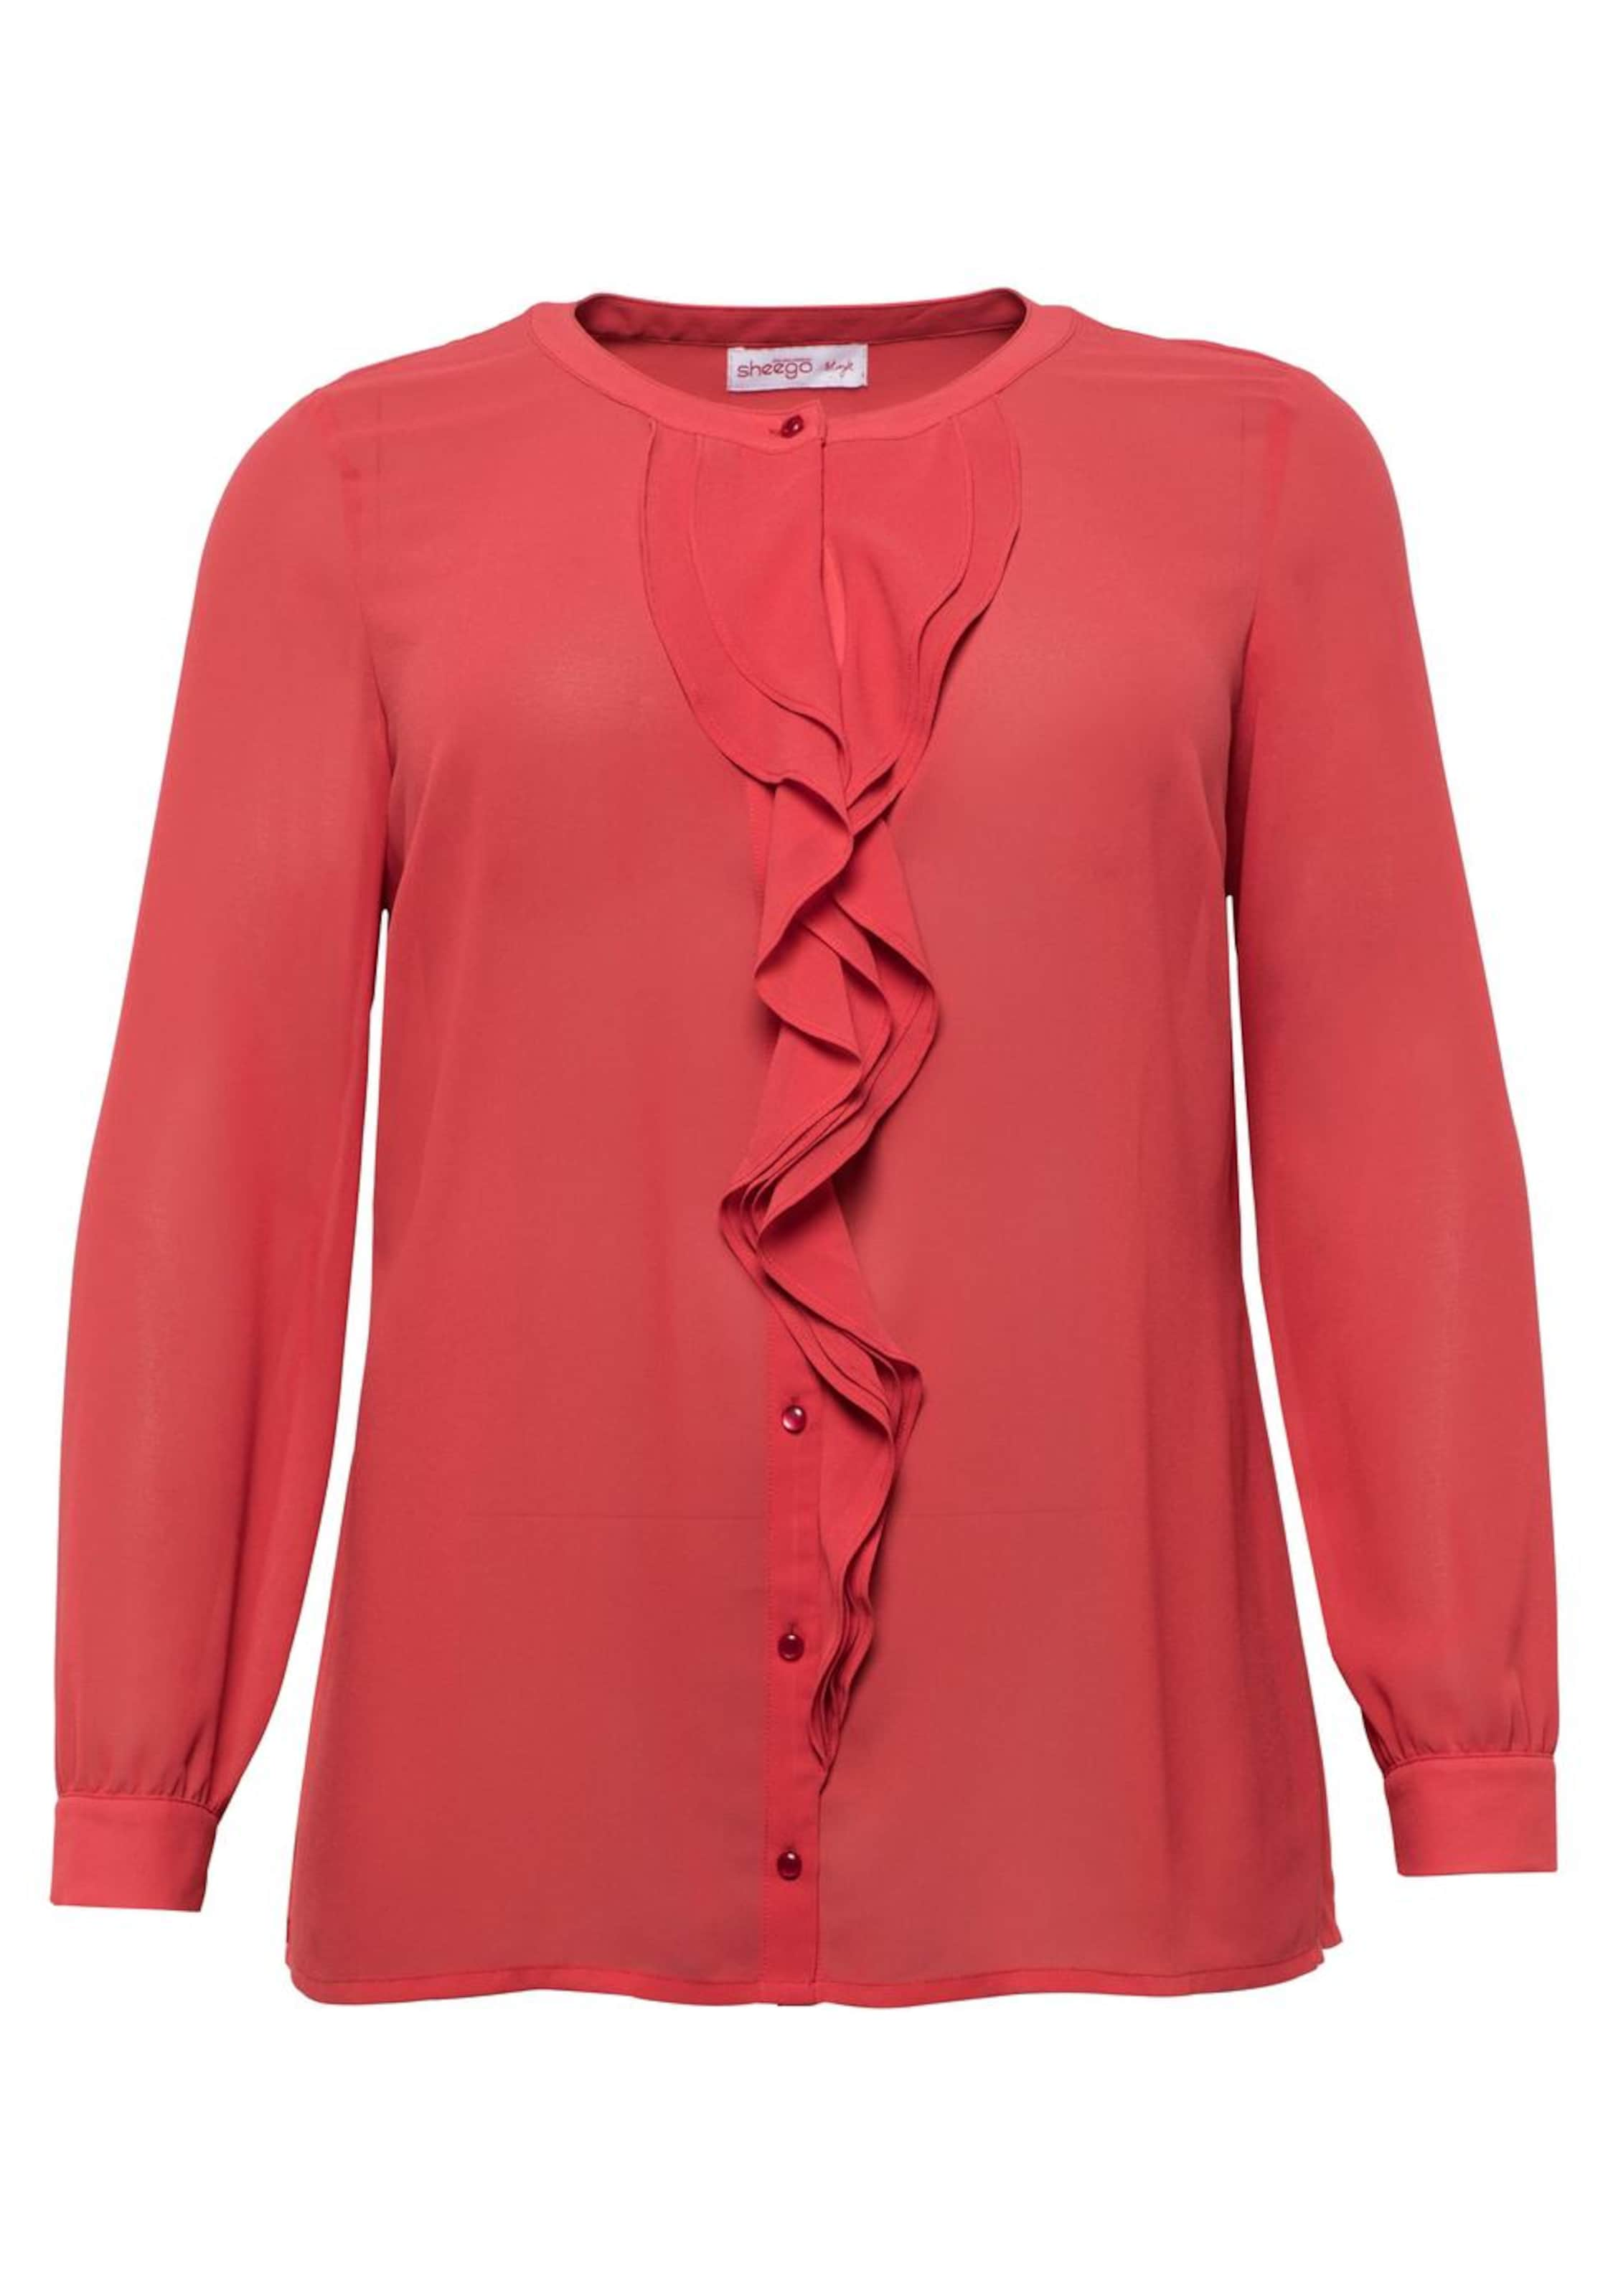 Style Sheego Sheego In Bluse Style In Hellrot Sheego Hellrot Bluse A5qRj4L3